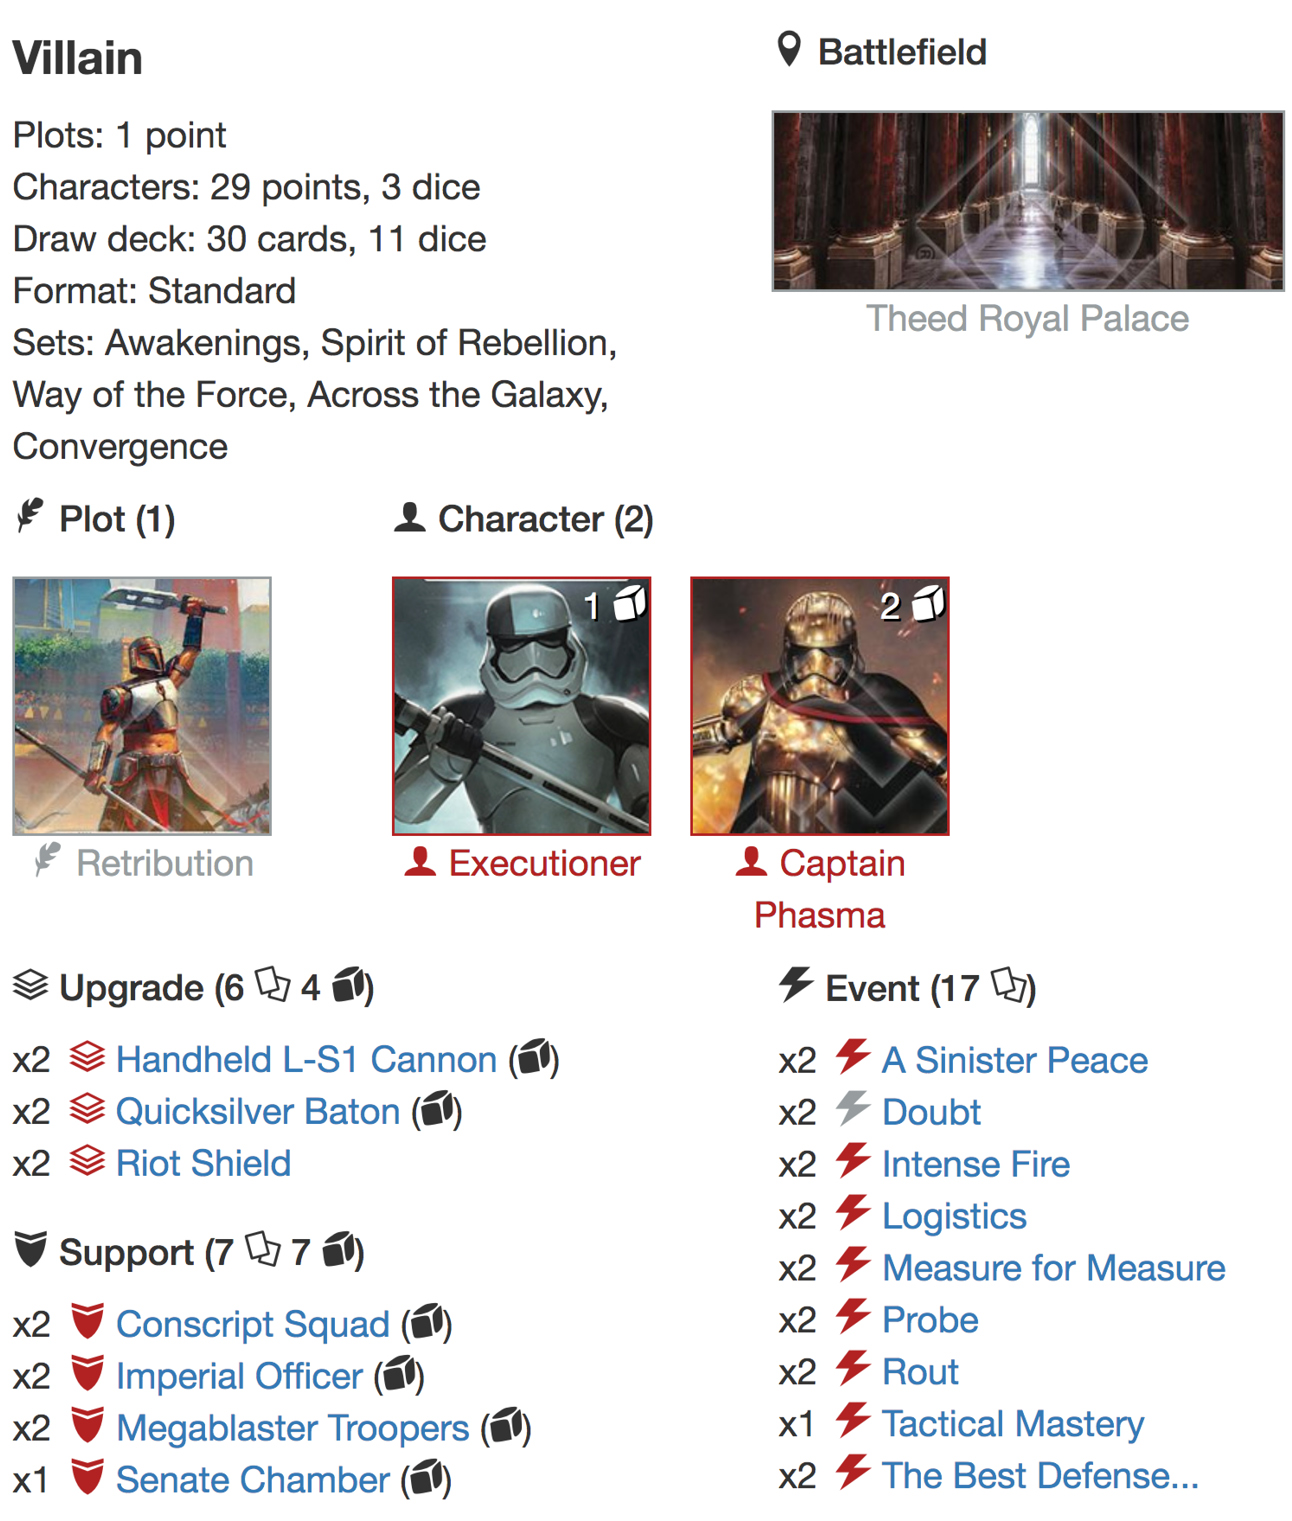 Phasma Executioner deck listjpg